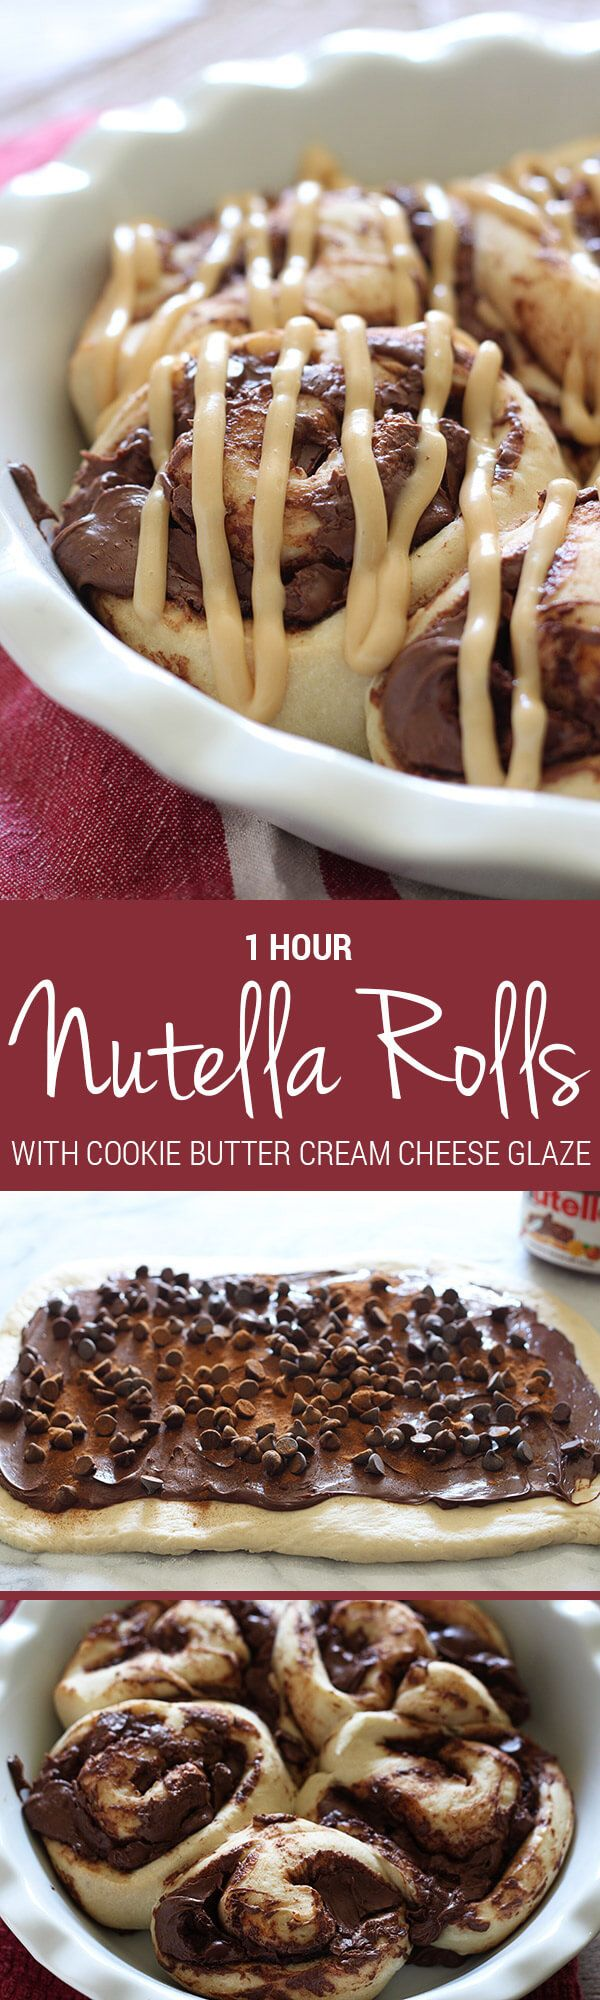 These Nutella Rolls have a Cookie Butter Cream Cheese Glaze and only take 1 HOUR to make!